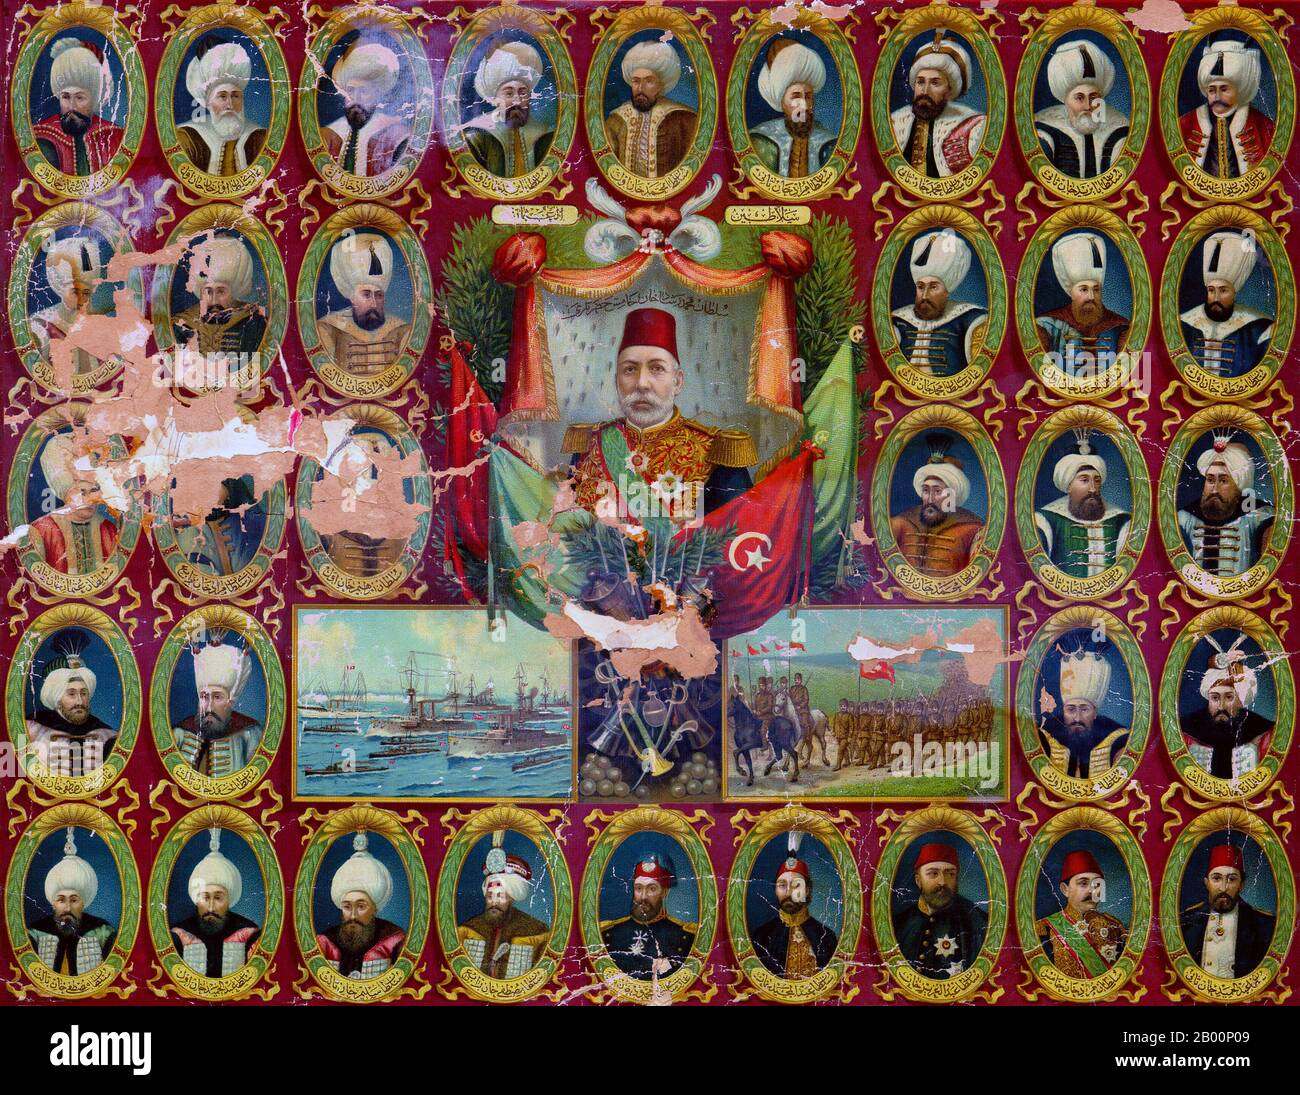 turkey germany poster showing sultans